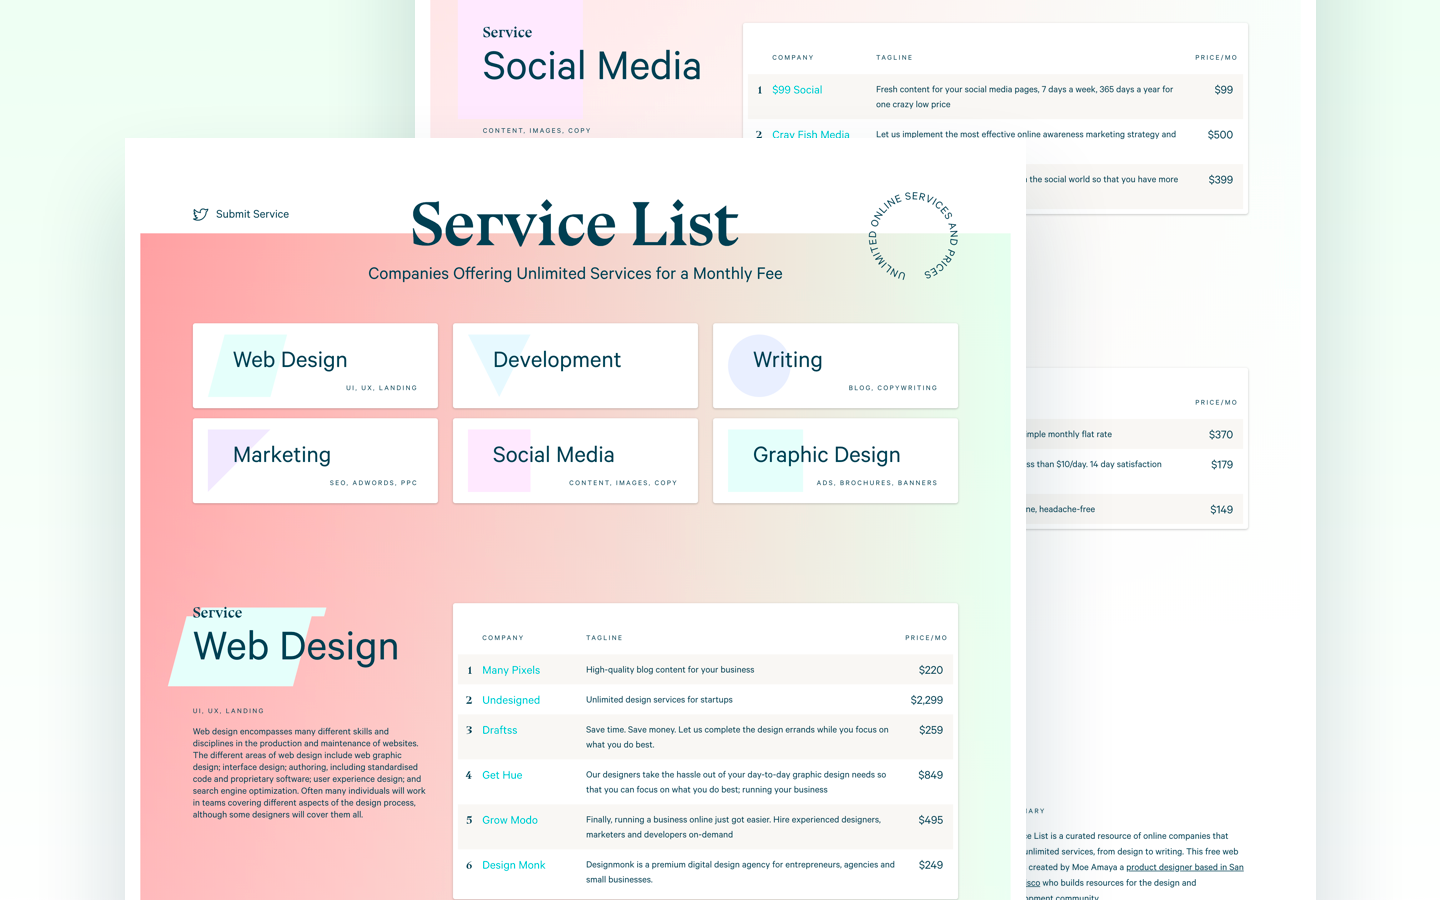 Service list - Unlimited graphic design service